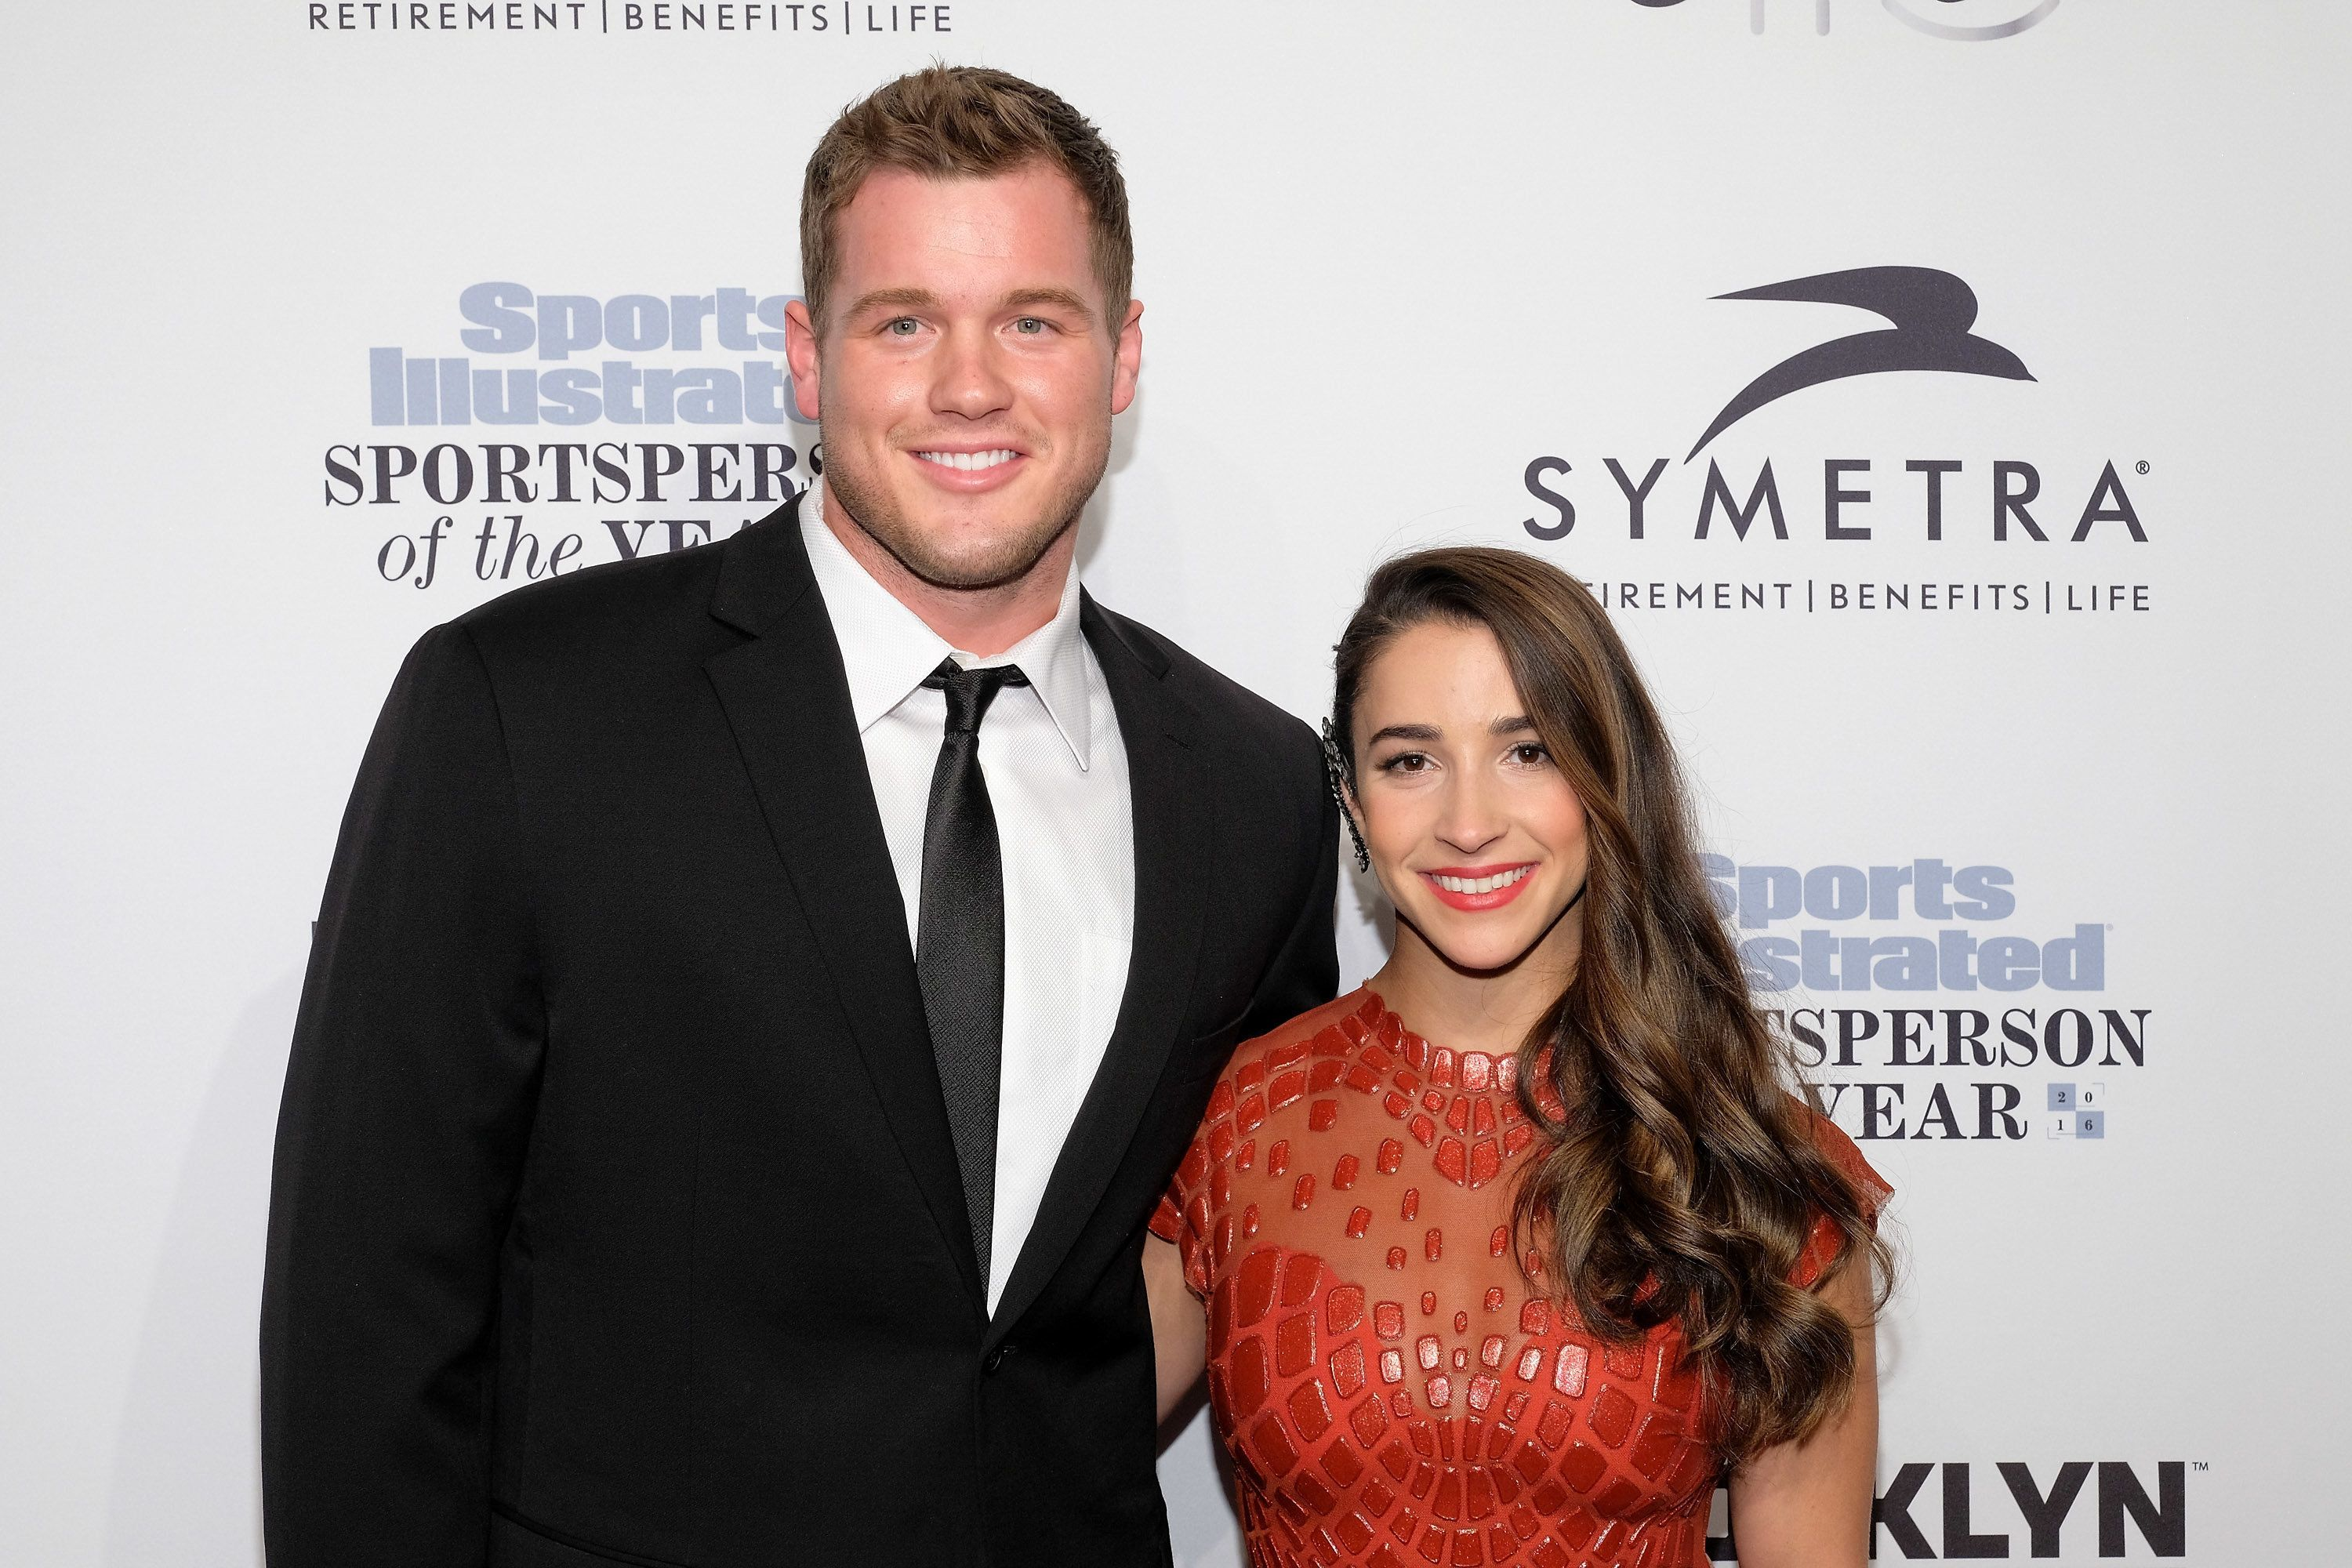 NEW YORK, NY - DECEMBER 12:  Colton Underwood (L) and Aly Raisman attend the 2016 Sports Illustrated Sportsperson of the Year at Barclays Center of Brooklyn on December 12, 2016 in the Brooklyn borough of New York City.  (Photo by D Dipasupil/FilmMagic)